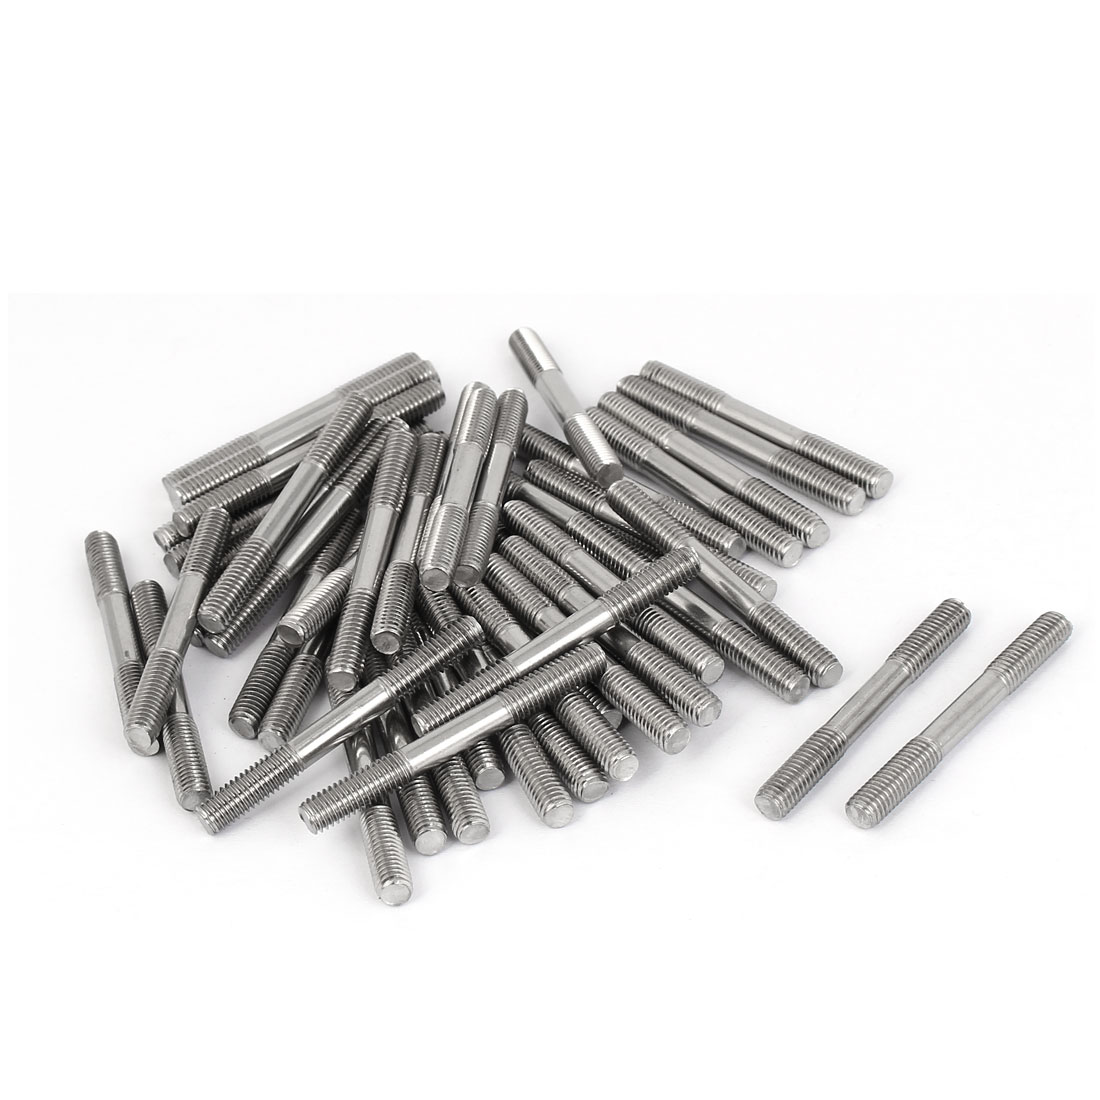 M5x45mm 304 Stainless Steel Double End Thread Tight Adjustable Push Rod Stud 50pcs